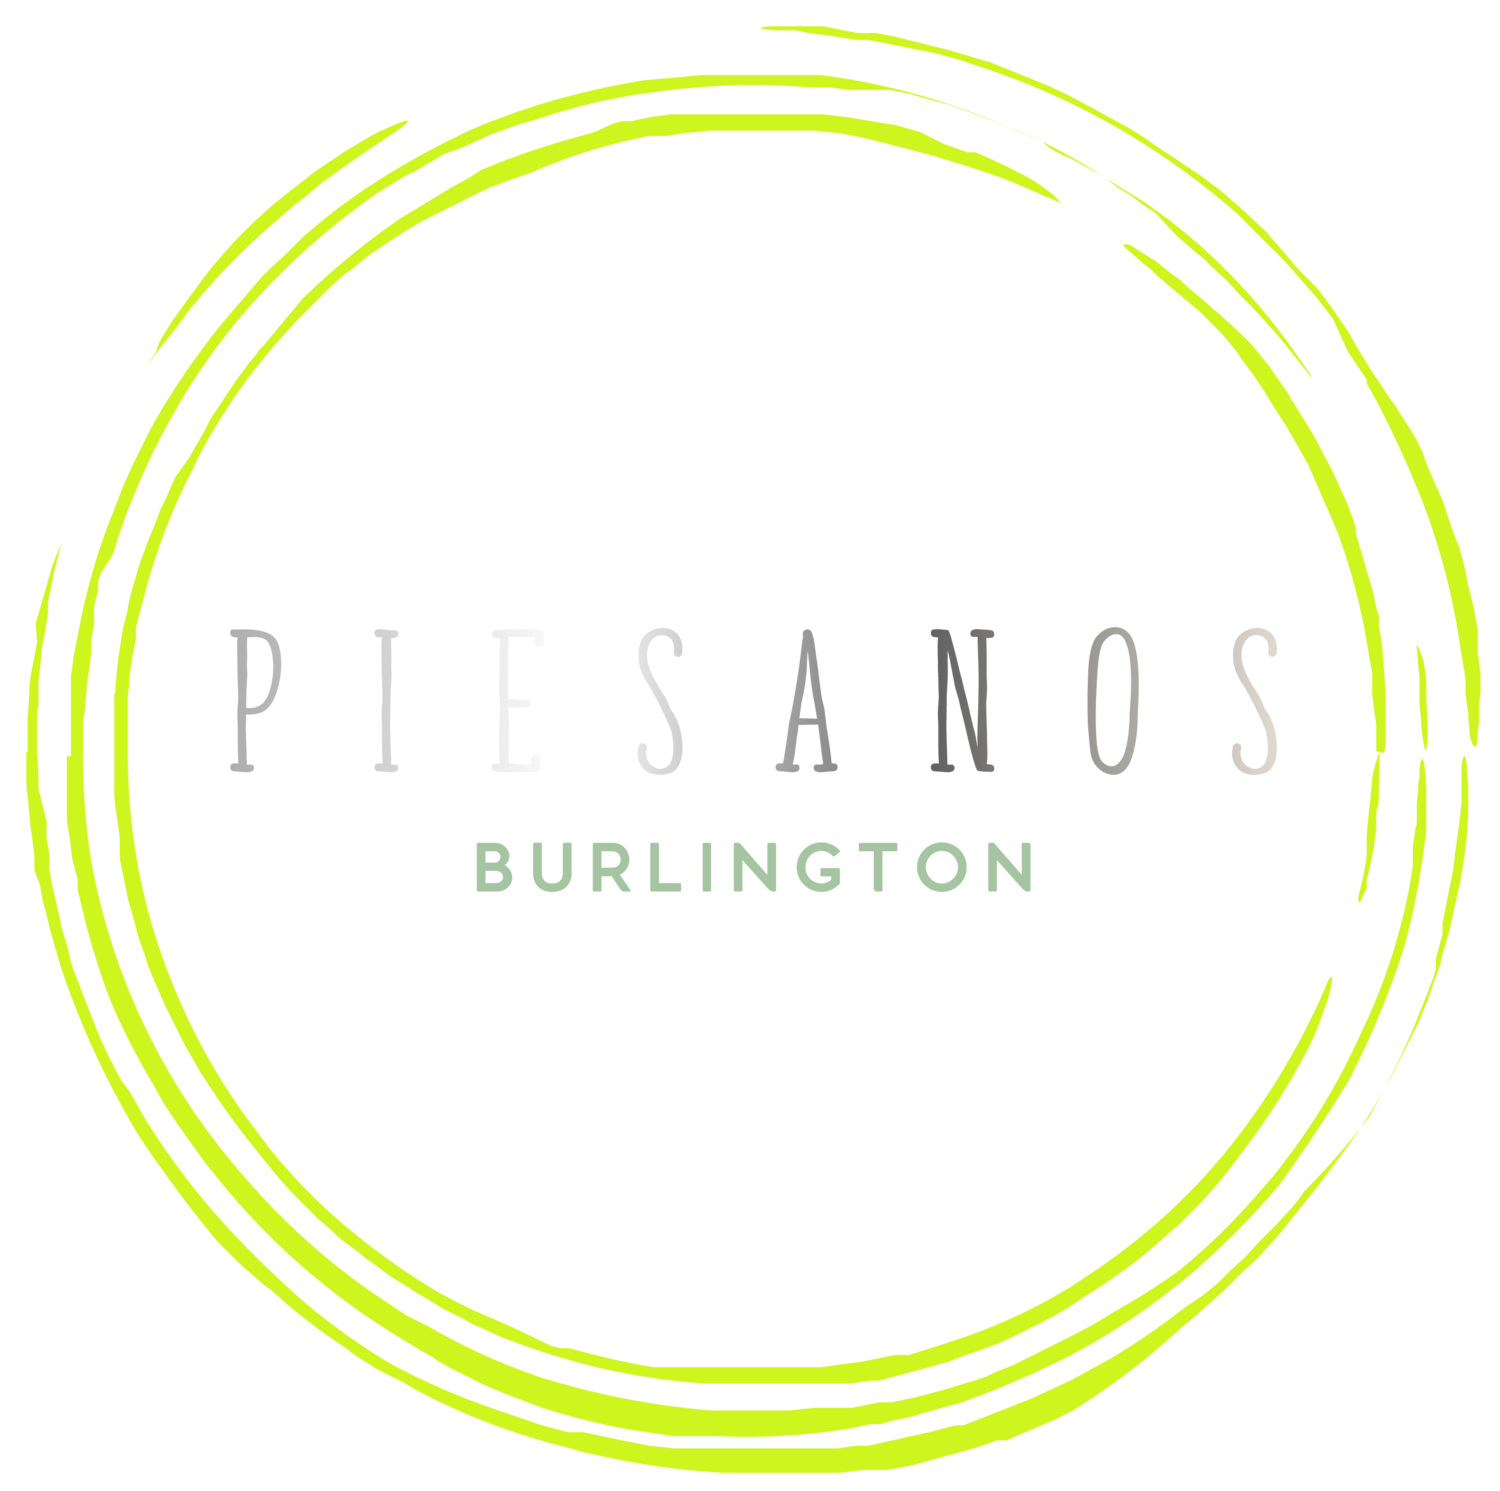 Piesanos Burlington